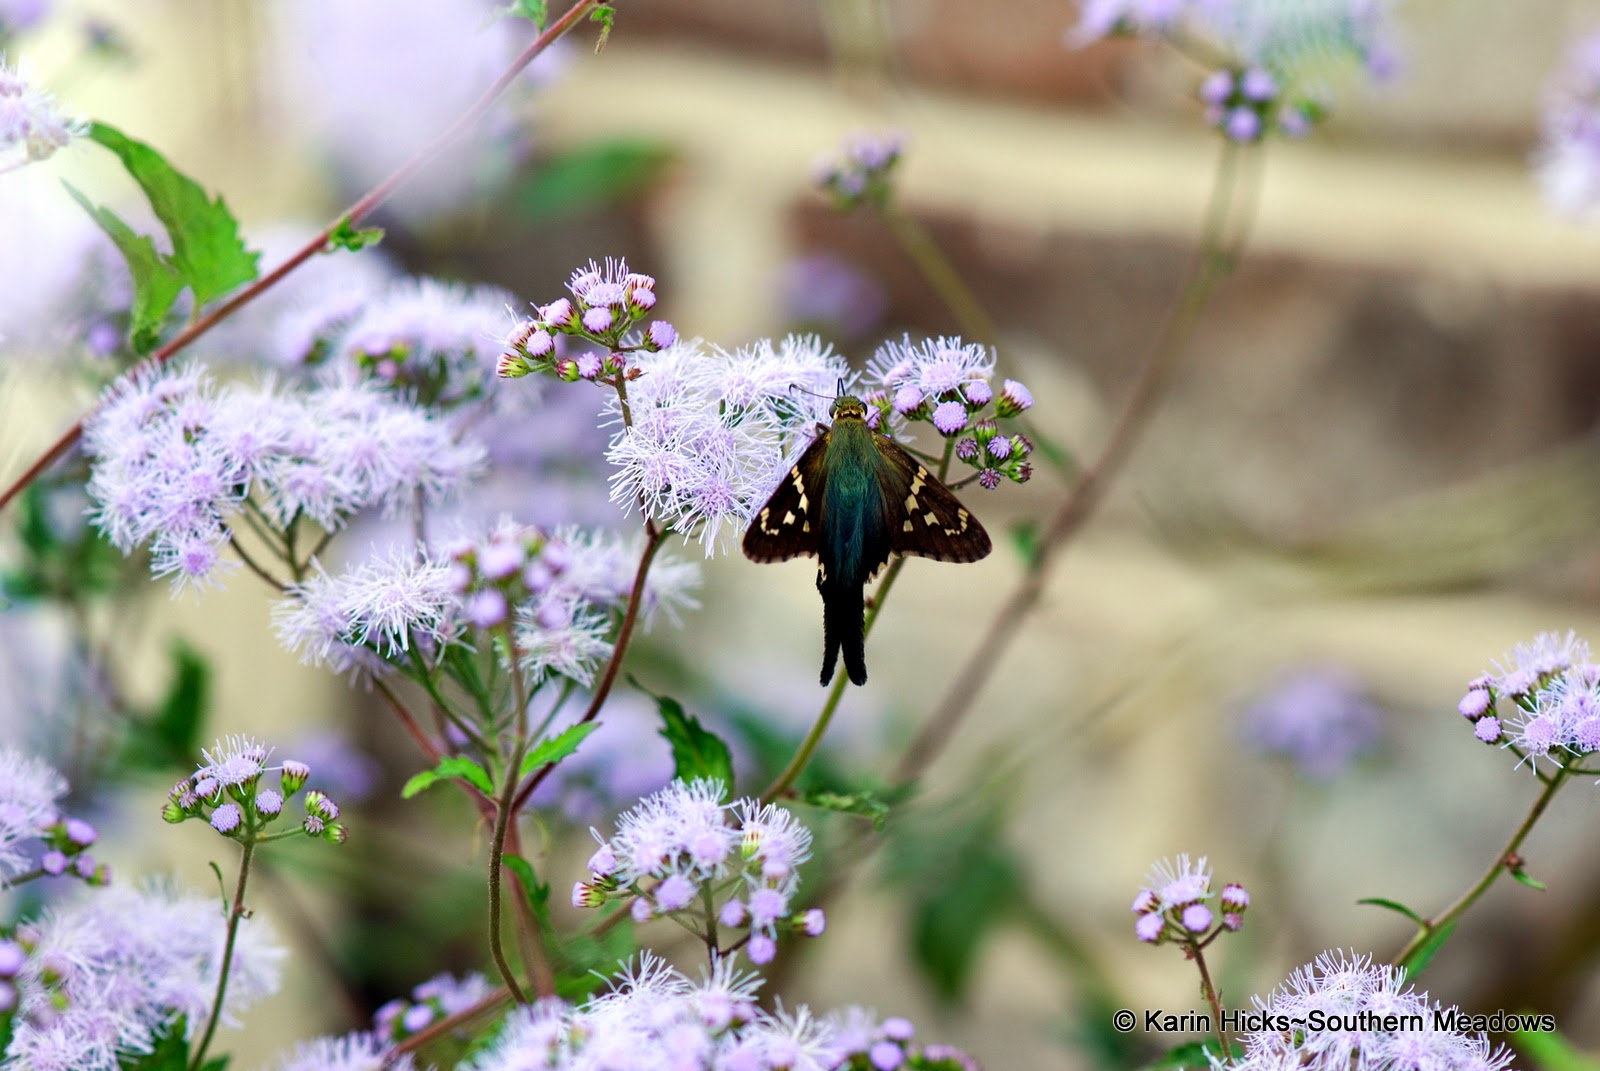 Long-tailed skipper on ageratum